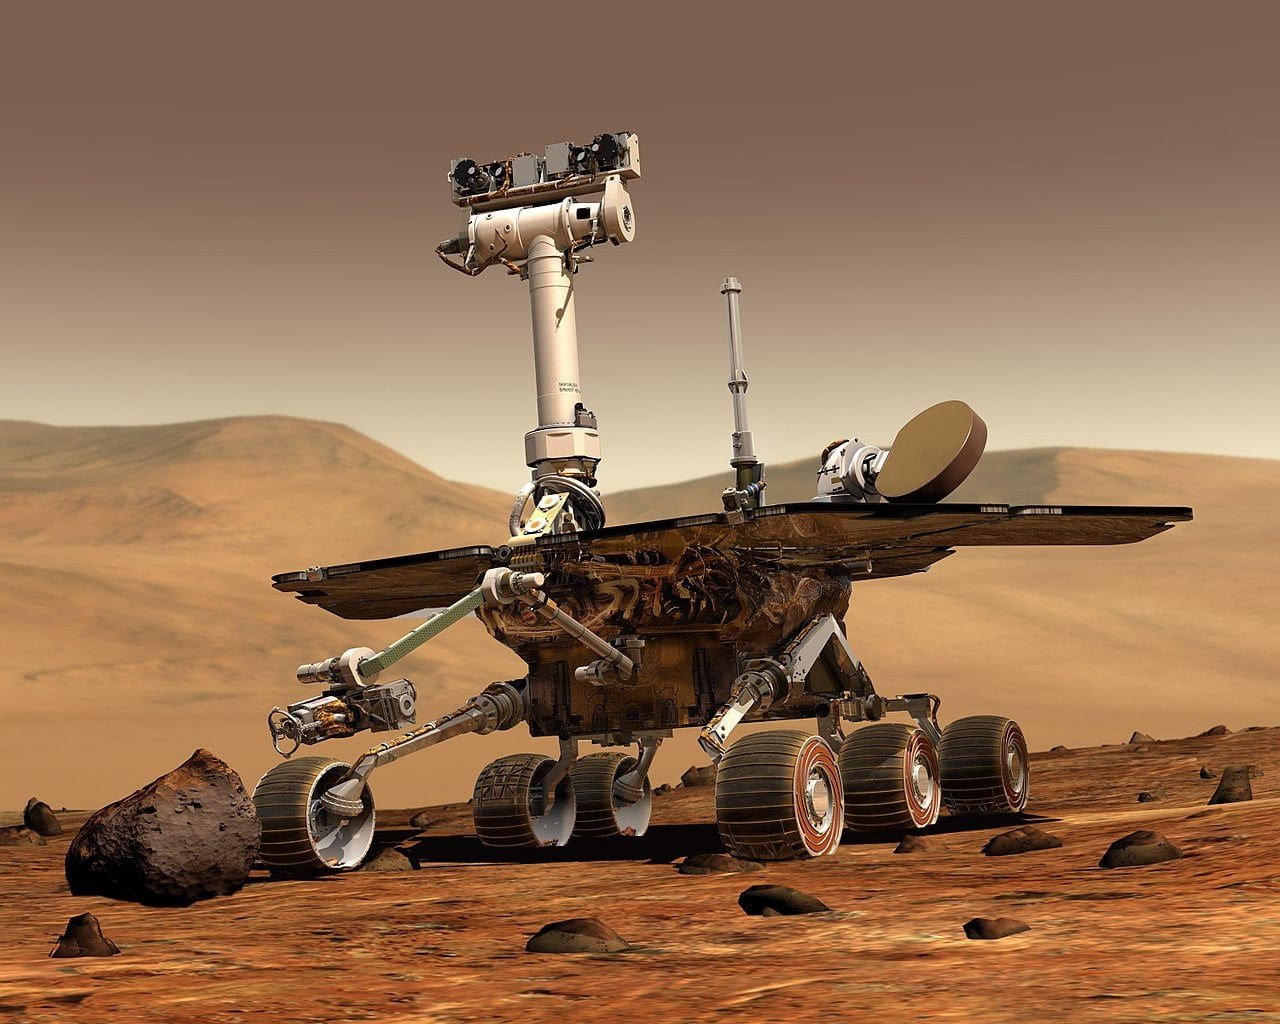 Farewell To Opportunity Rover